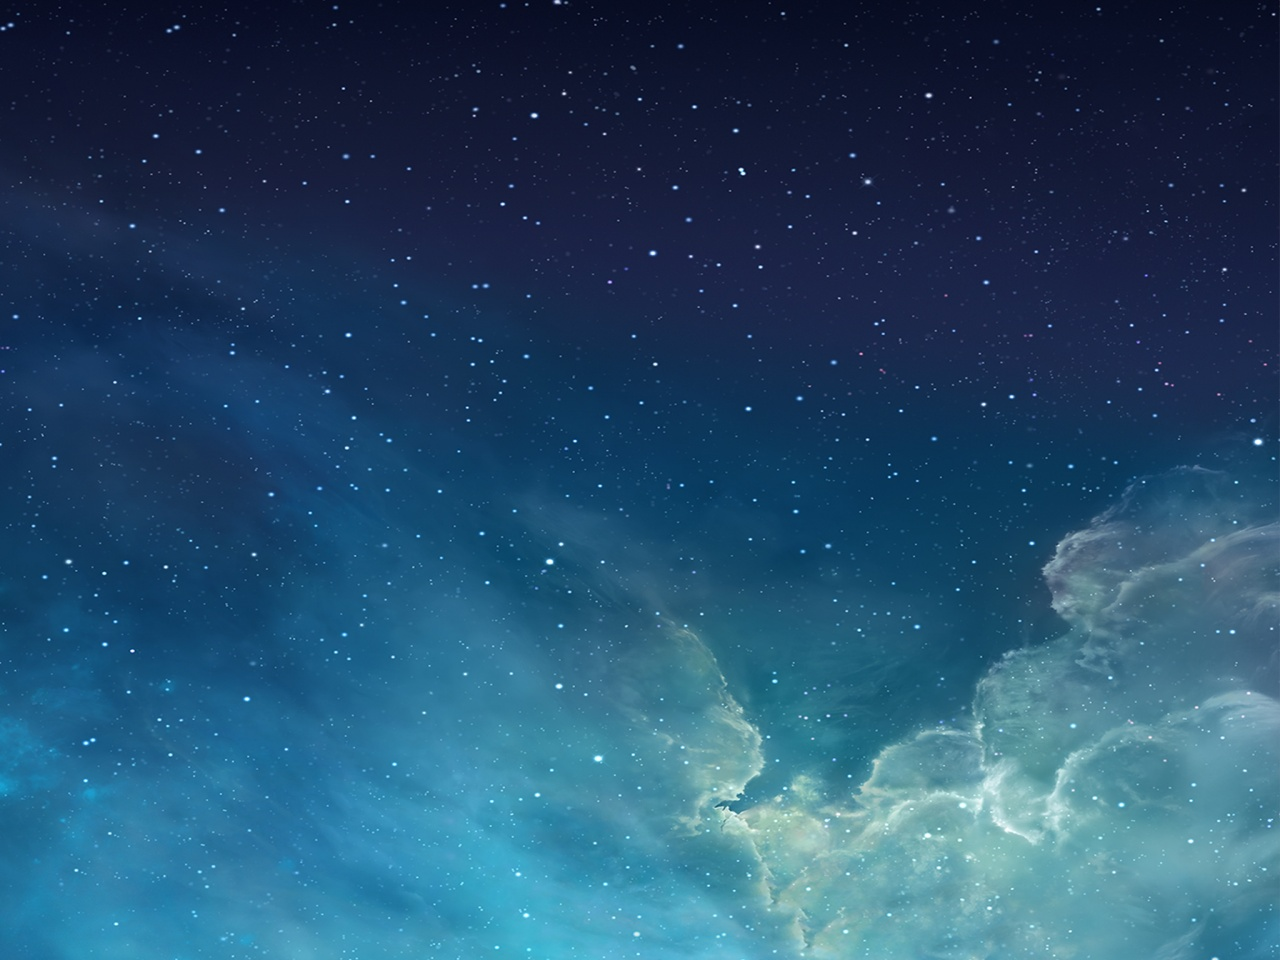 Ios 8 background image - Ios 7 Galaxy Wallpapers Hd Wallpapers